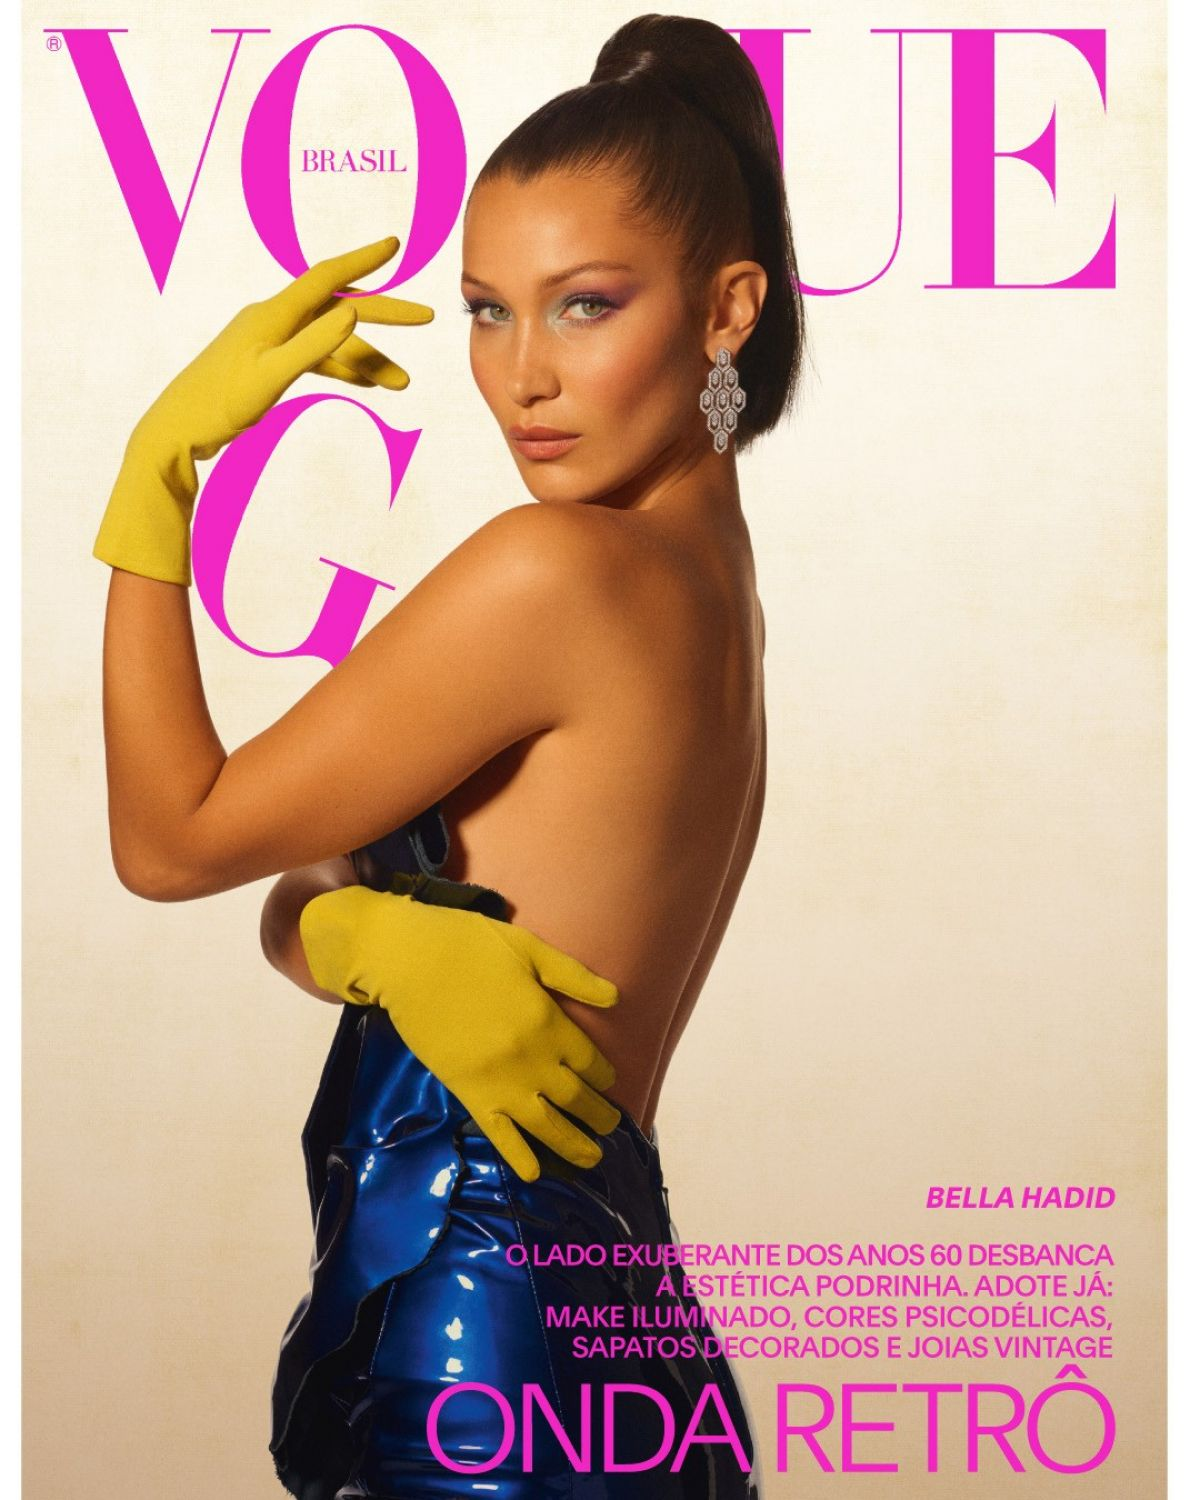 BELLA HADID for Vogue Magazine, Brazil September 2017